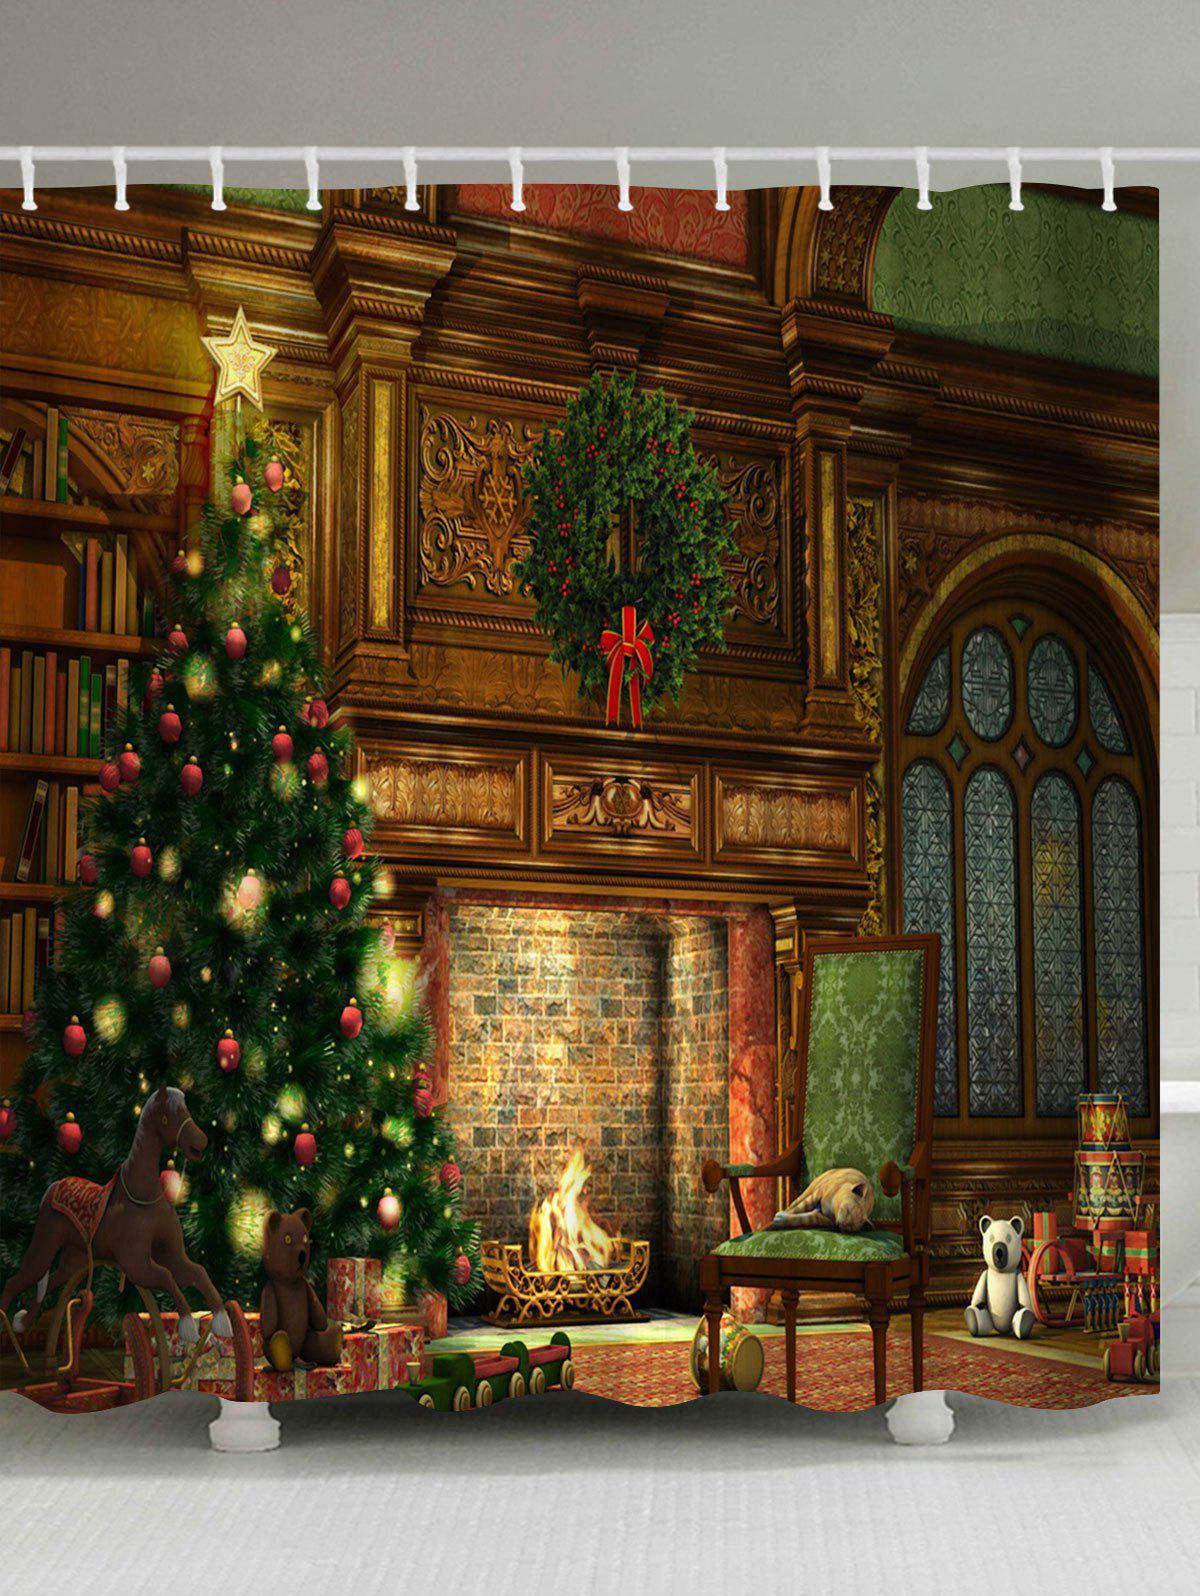 Christmas Fireplace Printed Waterproof Shower CurtainHOME<br><br>Size: W71 INCH * L71 INCH; Color: BROWN; Products Type: Shower Curtains; Materials: Polyester; Pattern: Christmas Tree; Style: Festival; Number of Hook Holes: W59 inch*L71 inch: 10; W71 inch*L71 inch: 12; W71 inch*L79 inch: 12; Package Contents: 1 x Shower Curtain 1 x Hooks (Set);